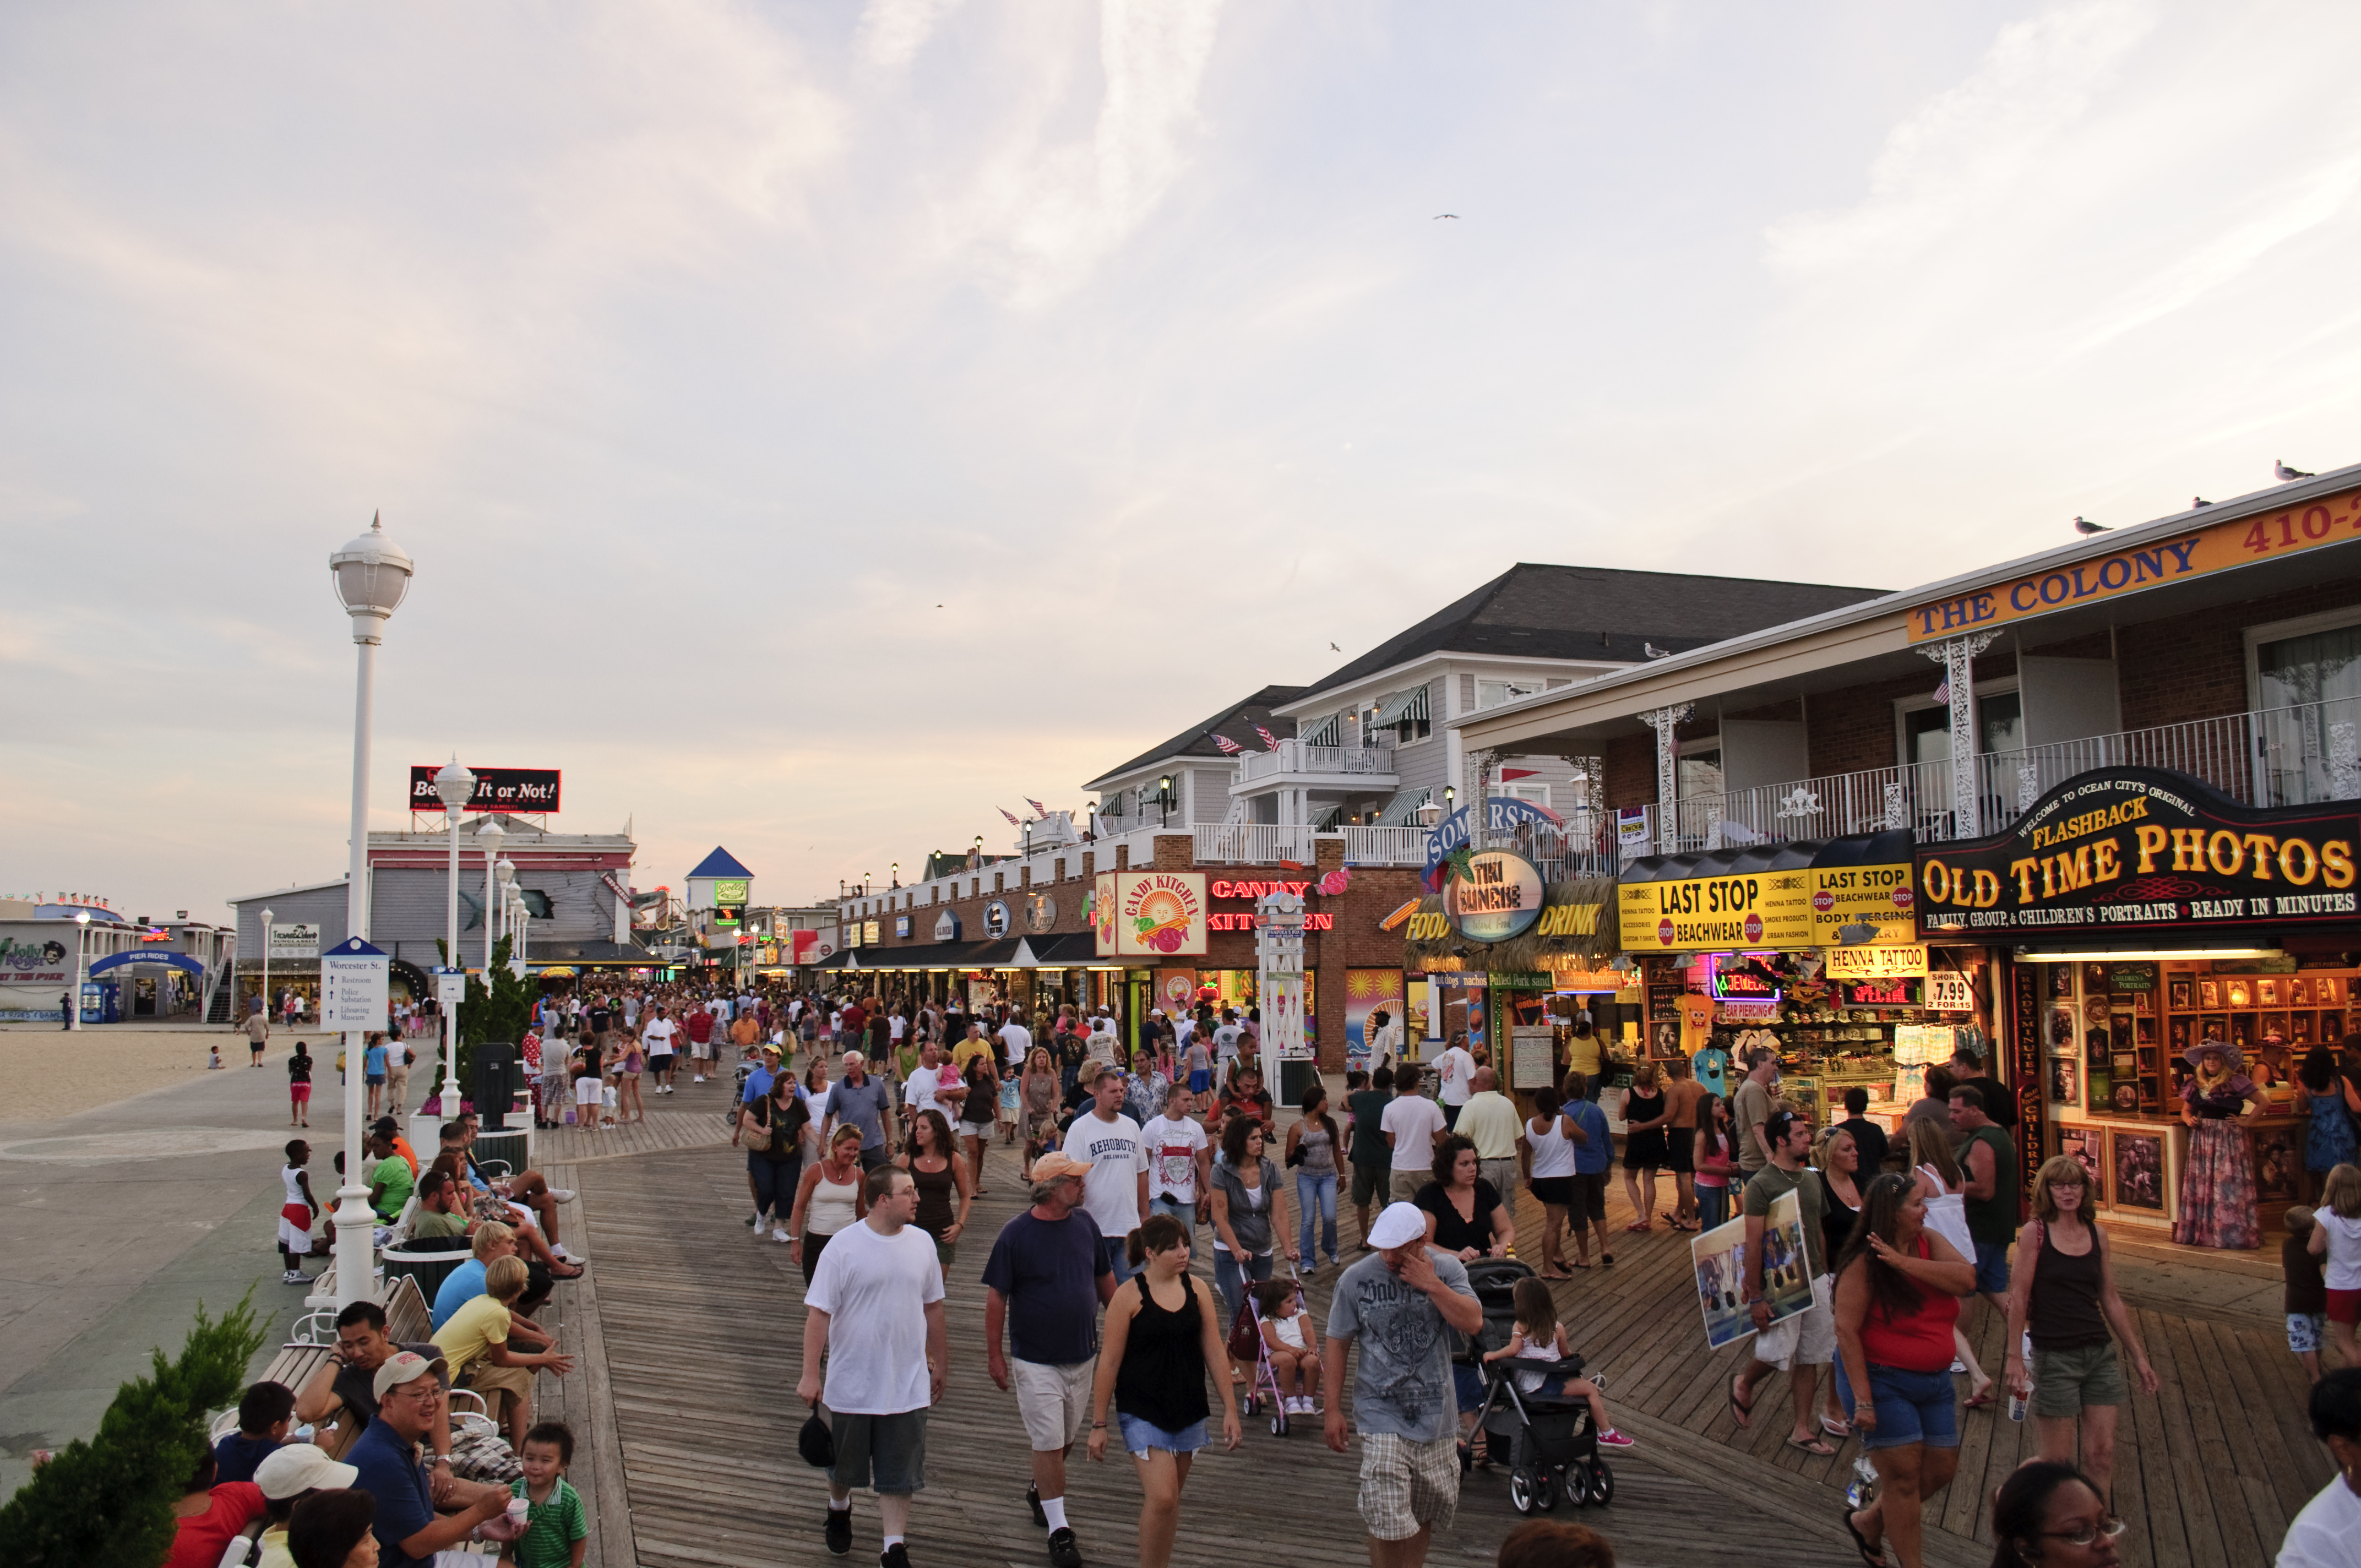 A Mime, A Stick Balloon Artist, A Puppeteer, and Others Win in Ocean City Boardwalk Regulation Case